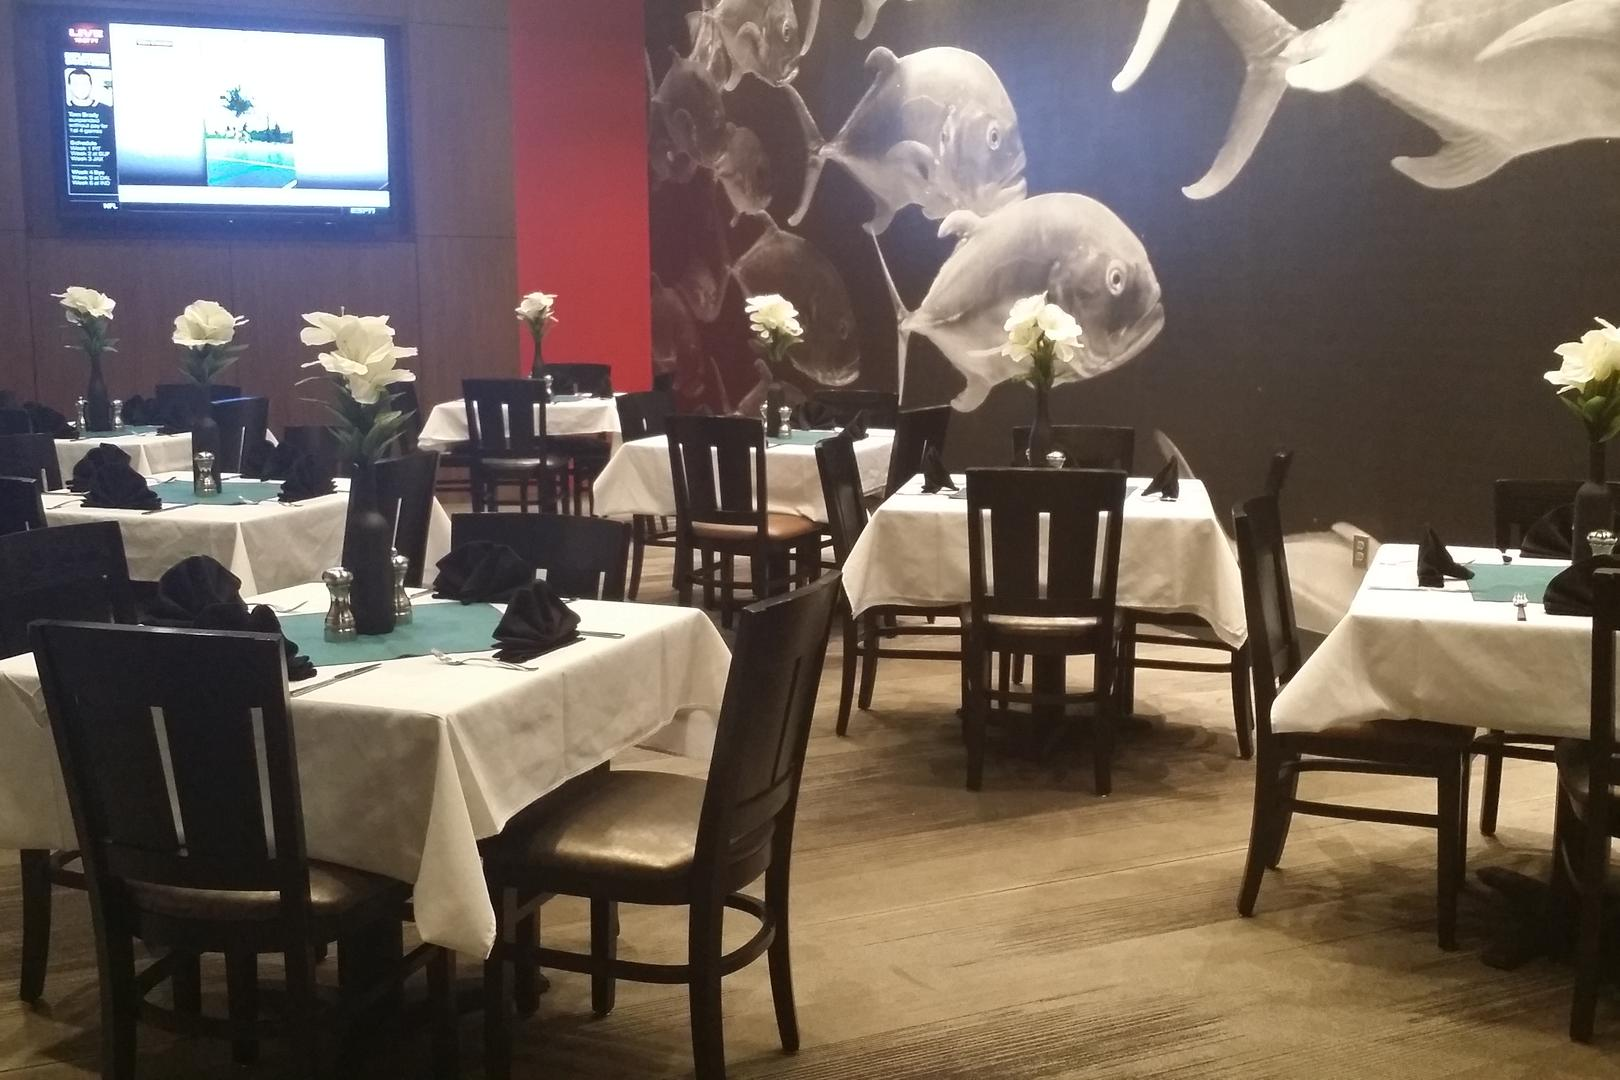 Dave & Buster's | Corporate Events, Wedding Locations, Event Spaces